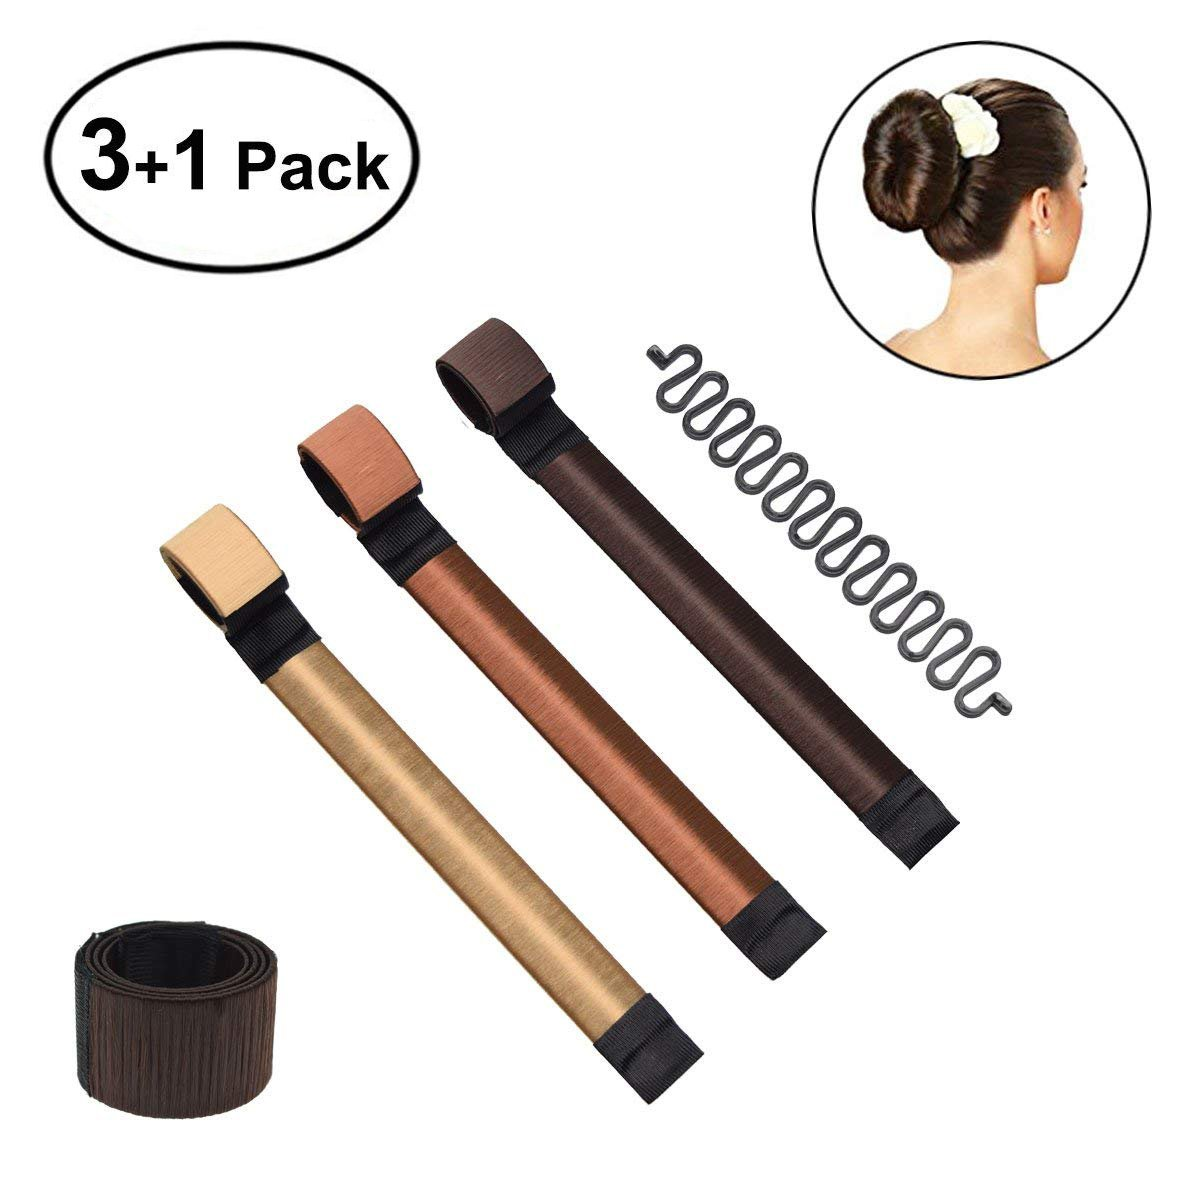 POPHEKO 3Pcs Hair Bun Maker Set, Fashion Women Girls Magic Hair Bun Maker Tool for Donut, Doughnut, Bun, French Twist (Coffee+Dark Coffee+Light Yellow) SPASS Technology Co. Ltd